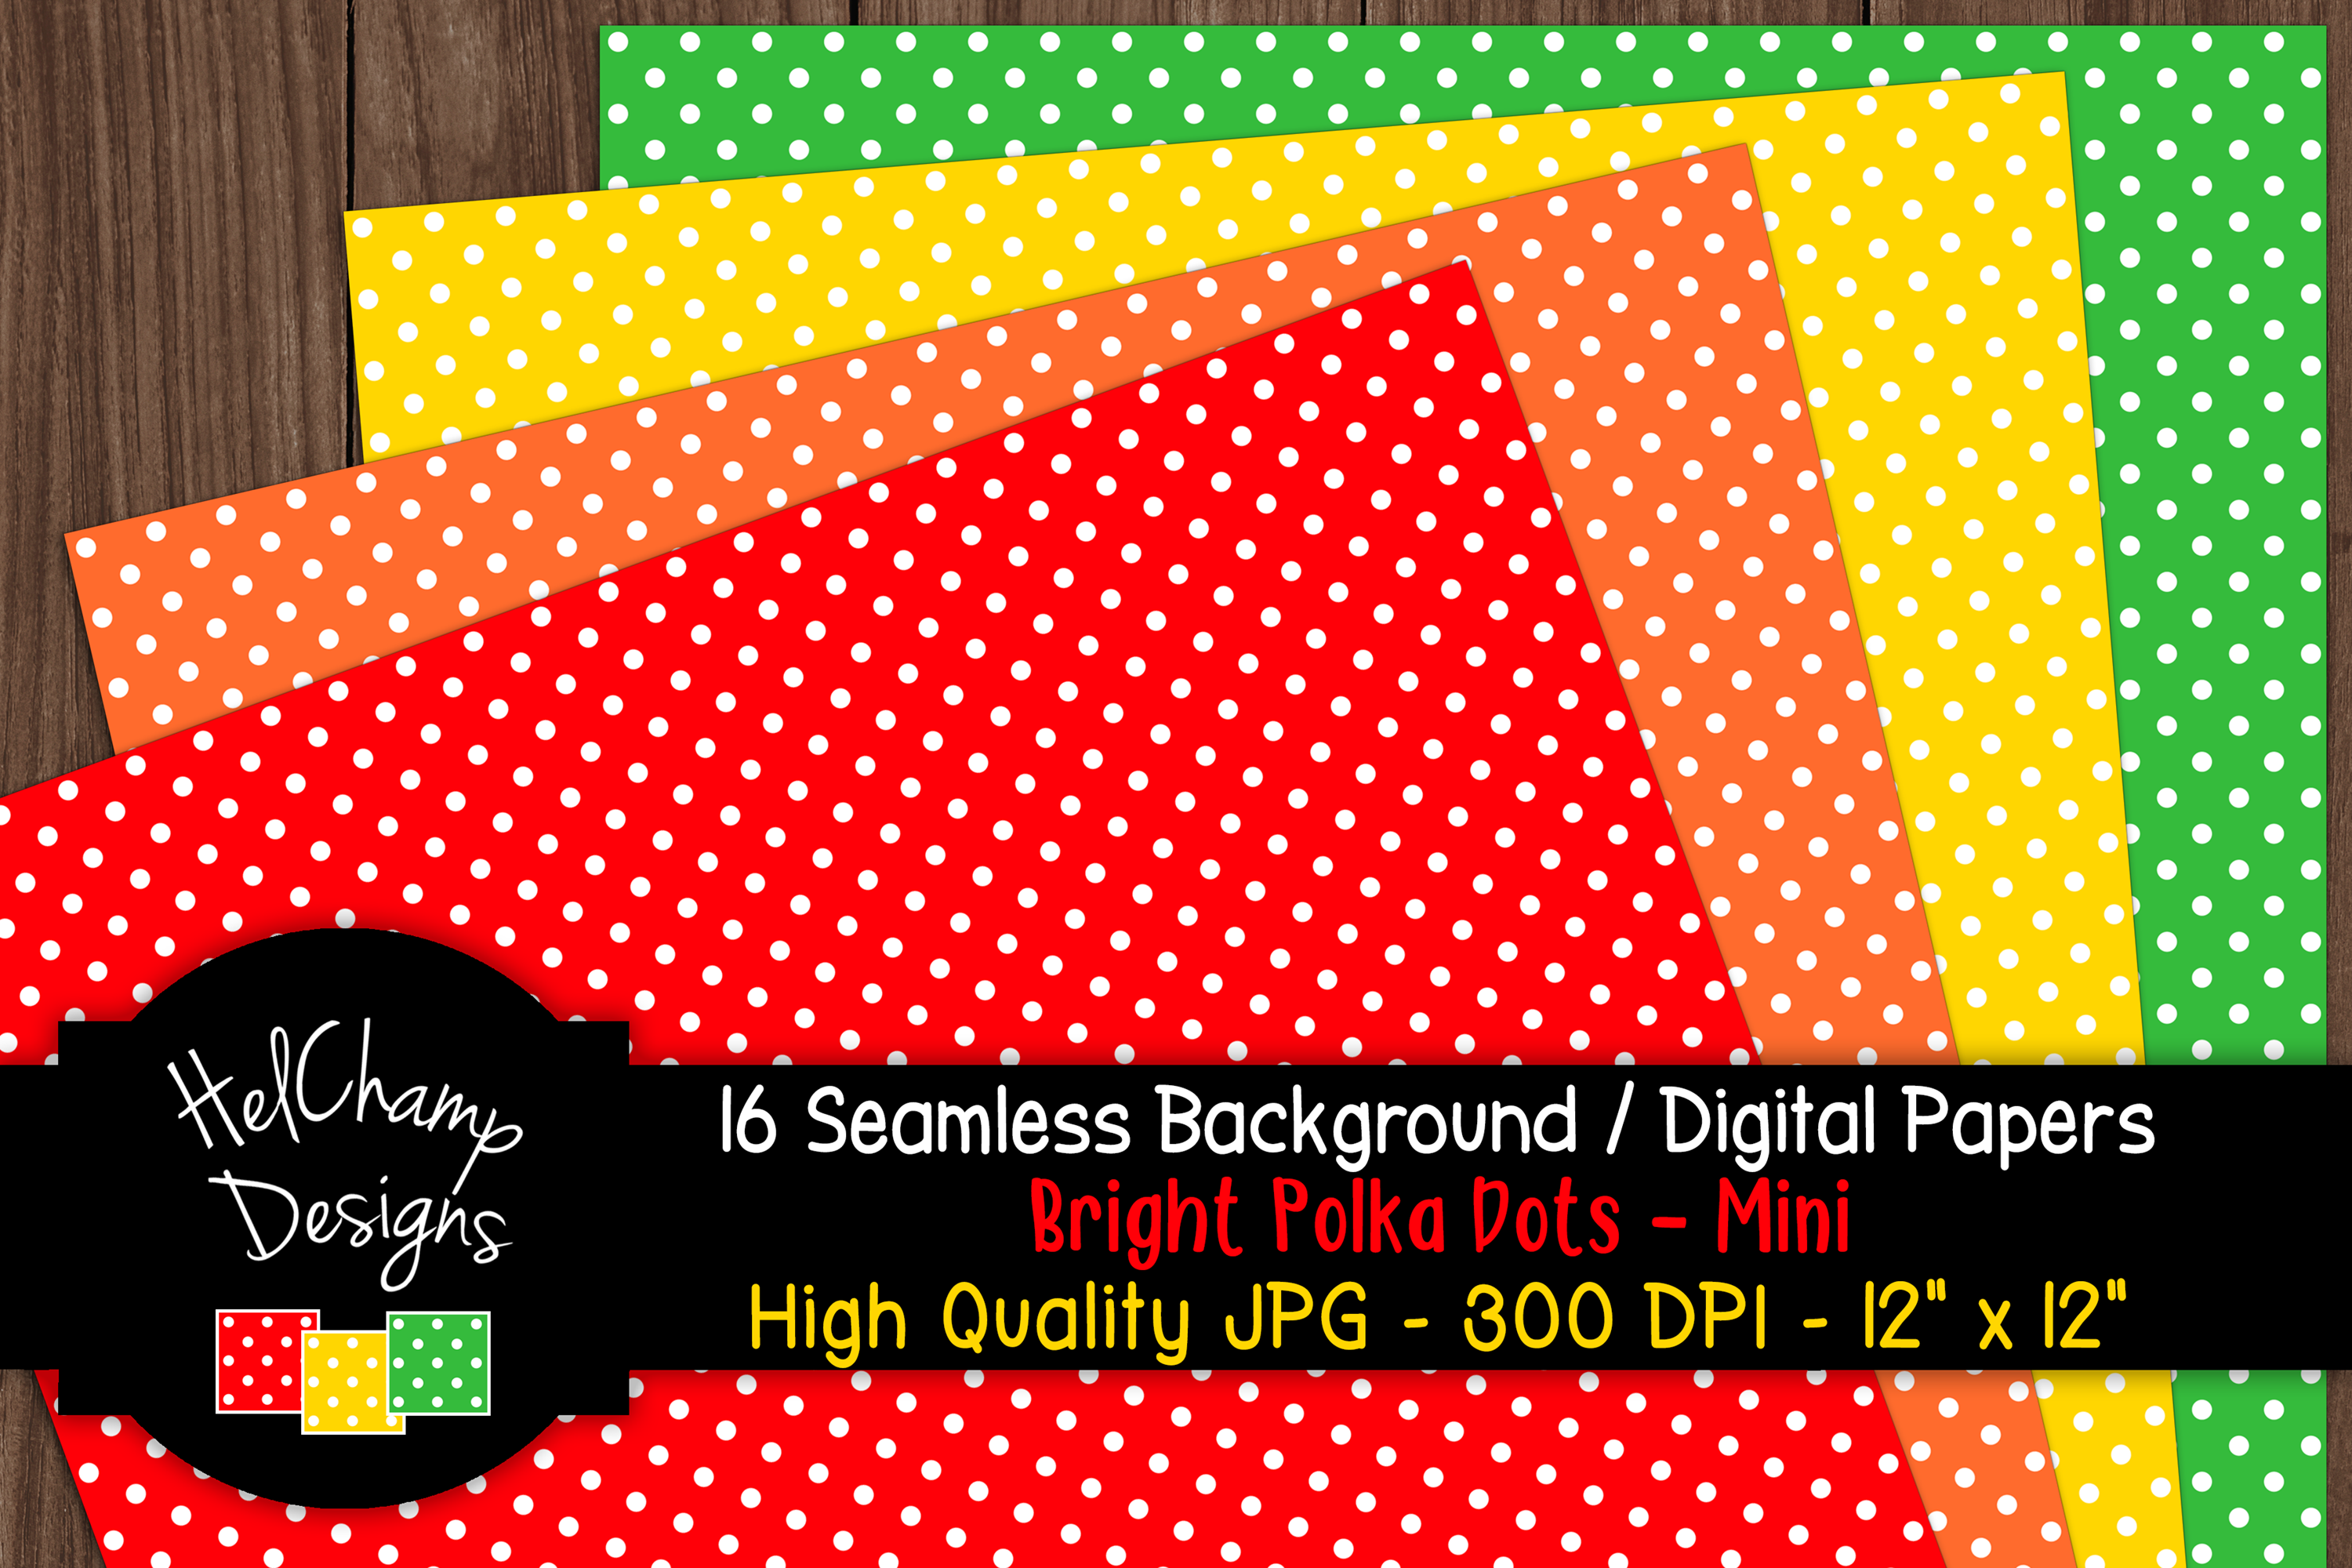 16 seamless Digital Papers - Bright Polka Dots Mini - HC017 example image 3